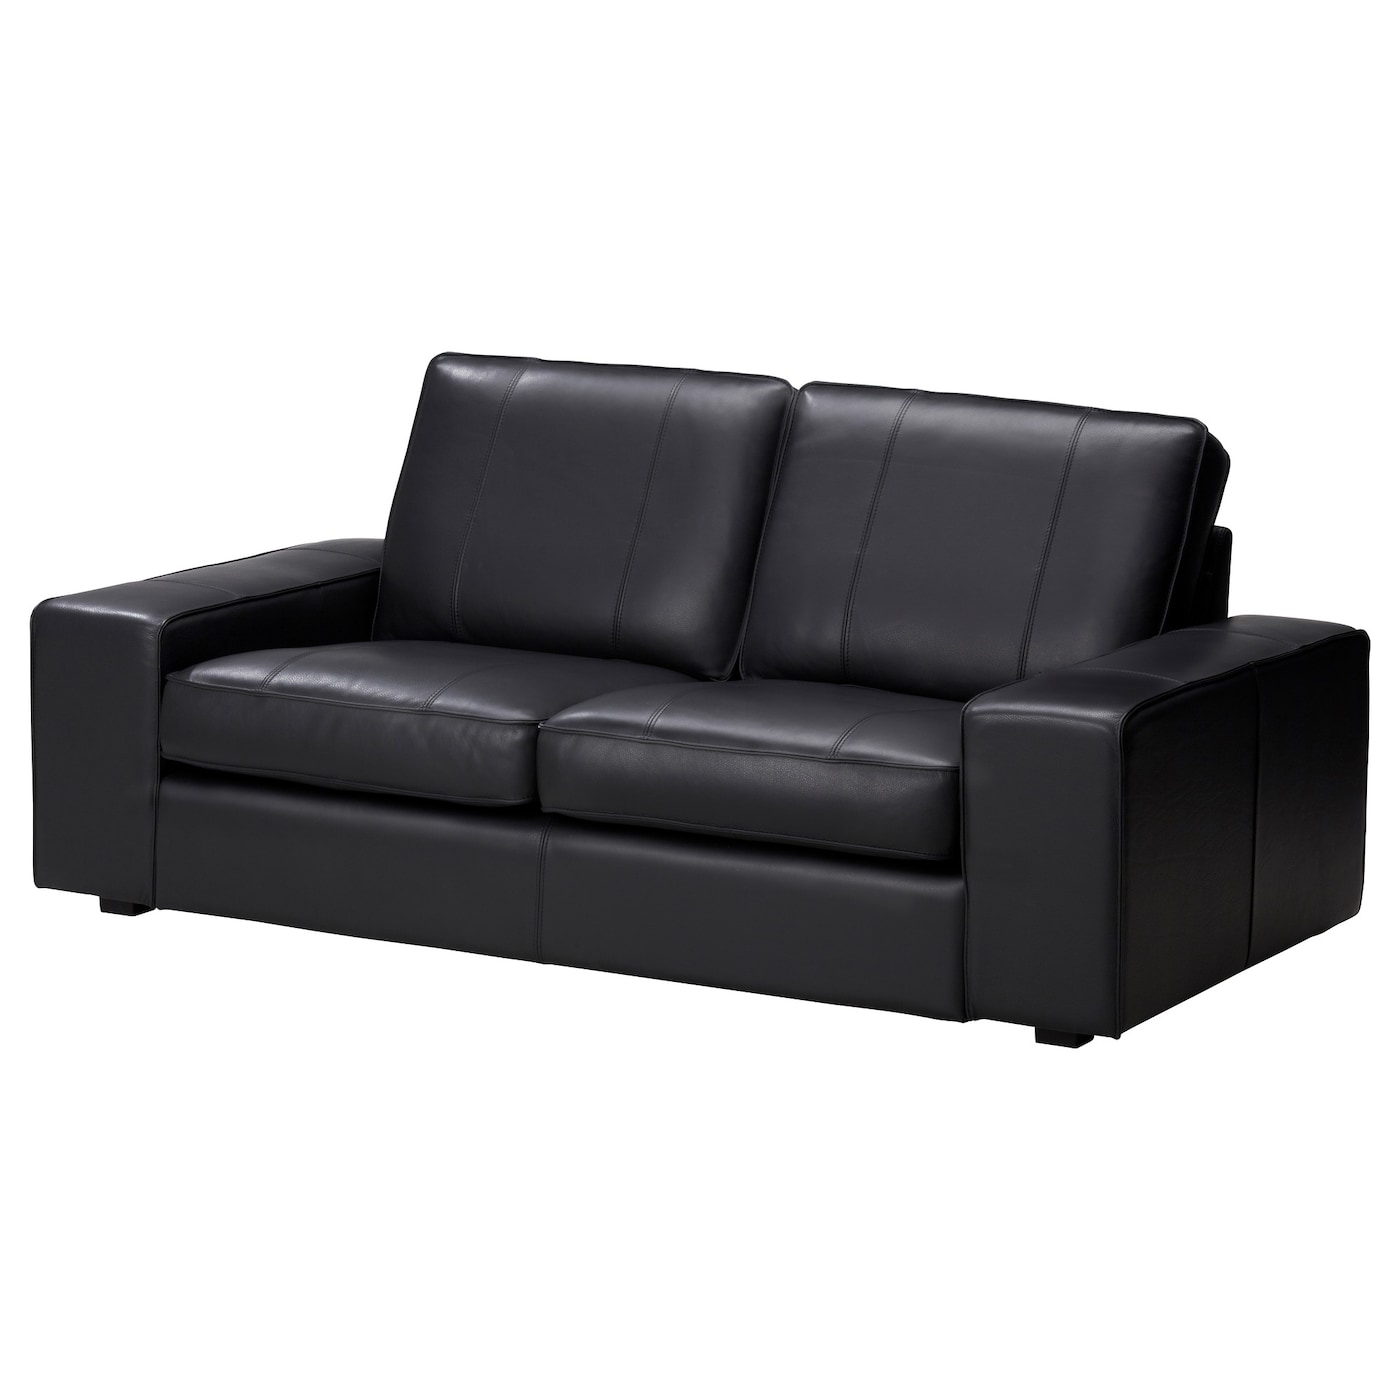 Ikea Kivik Two Seat Sofa 10 Year Guarantee Read About The Terms In